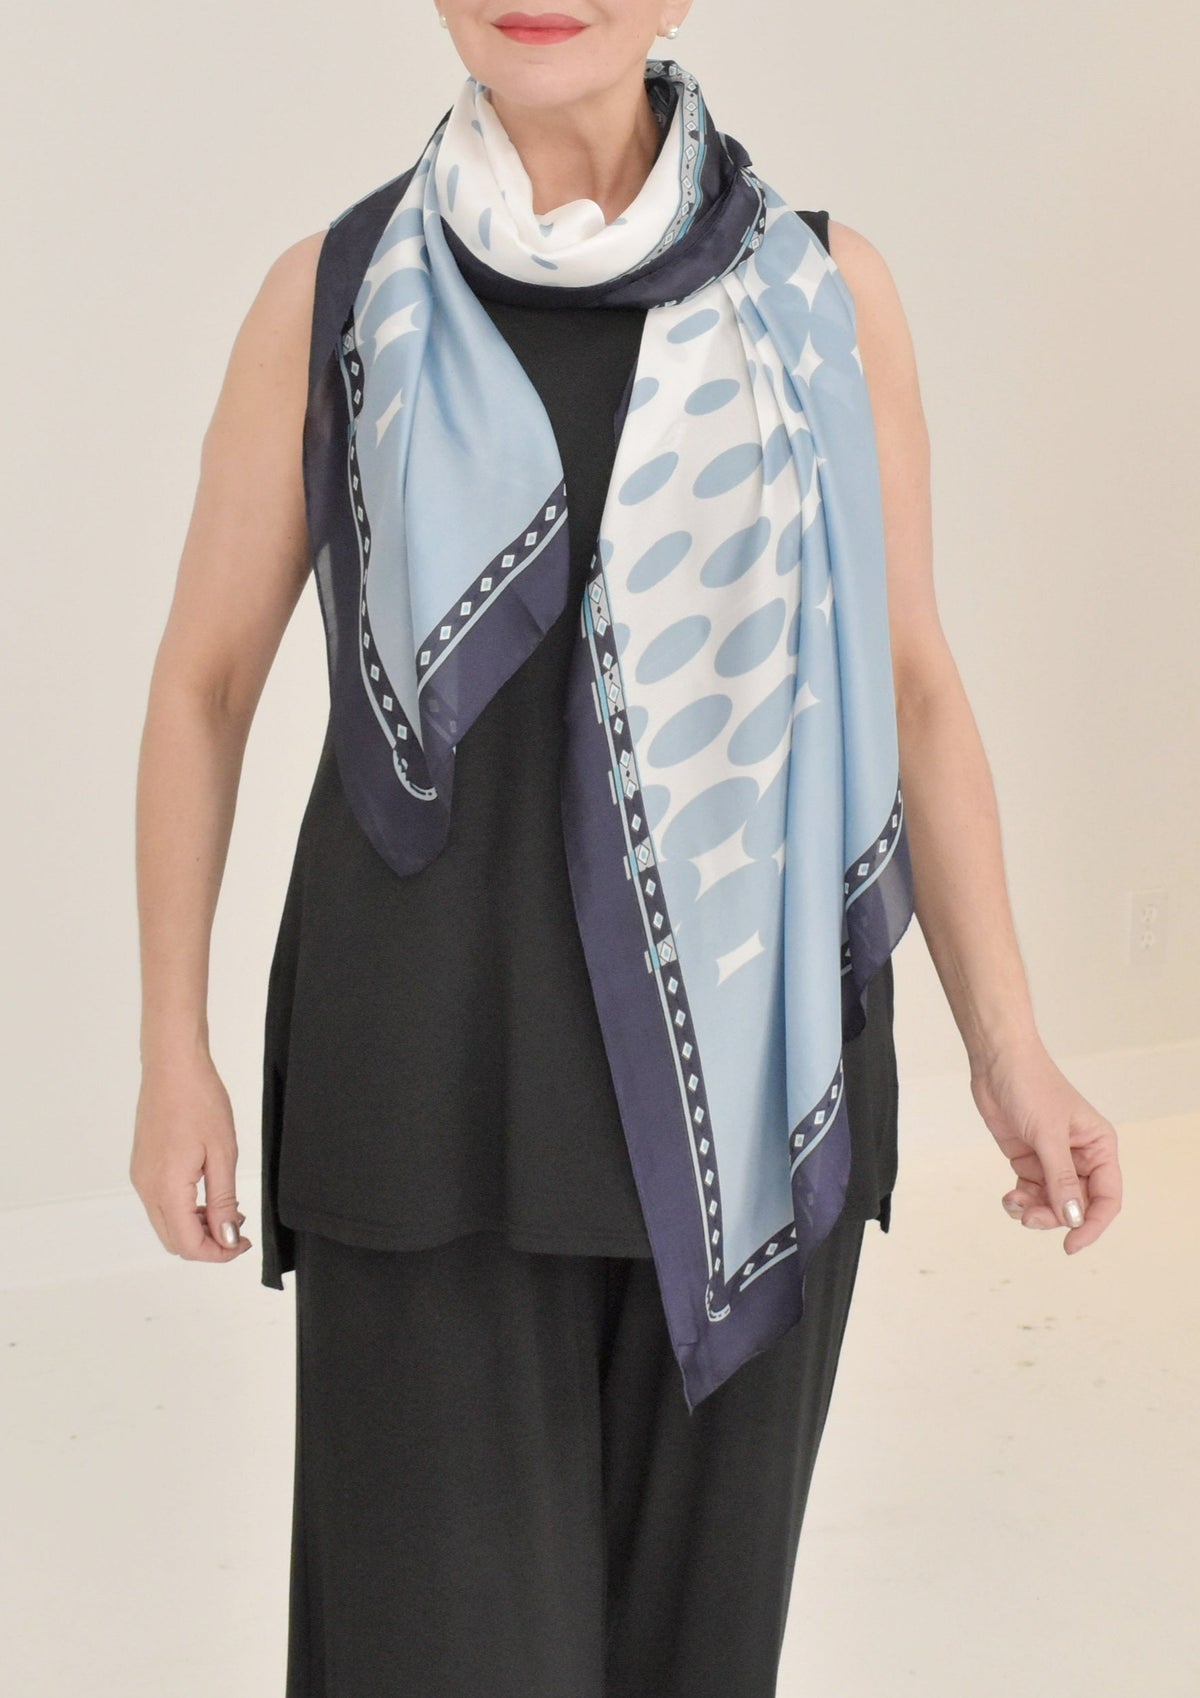 FLAT STONES SHORT NECKLACE - TWO A